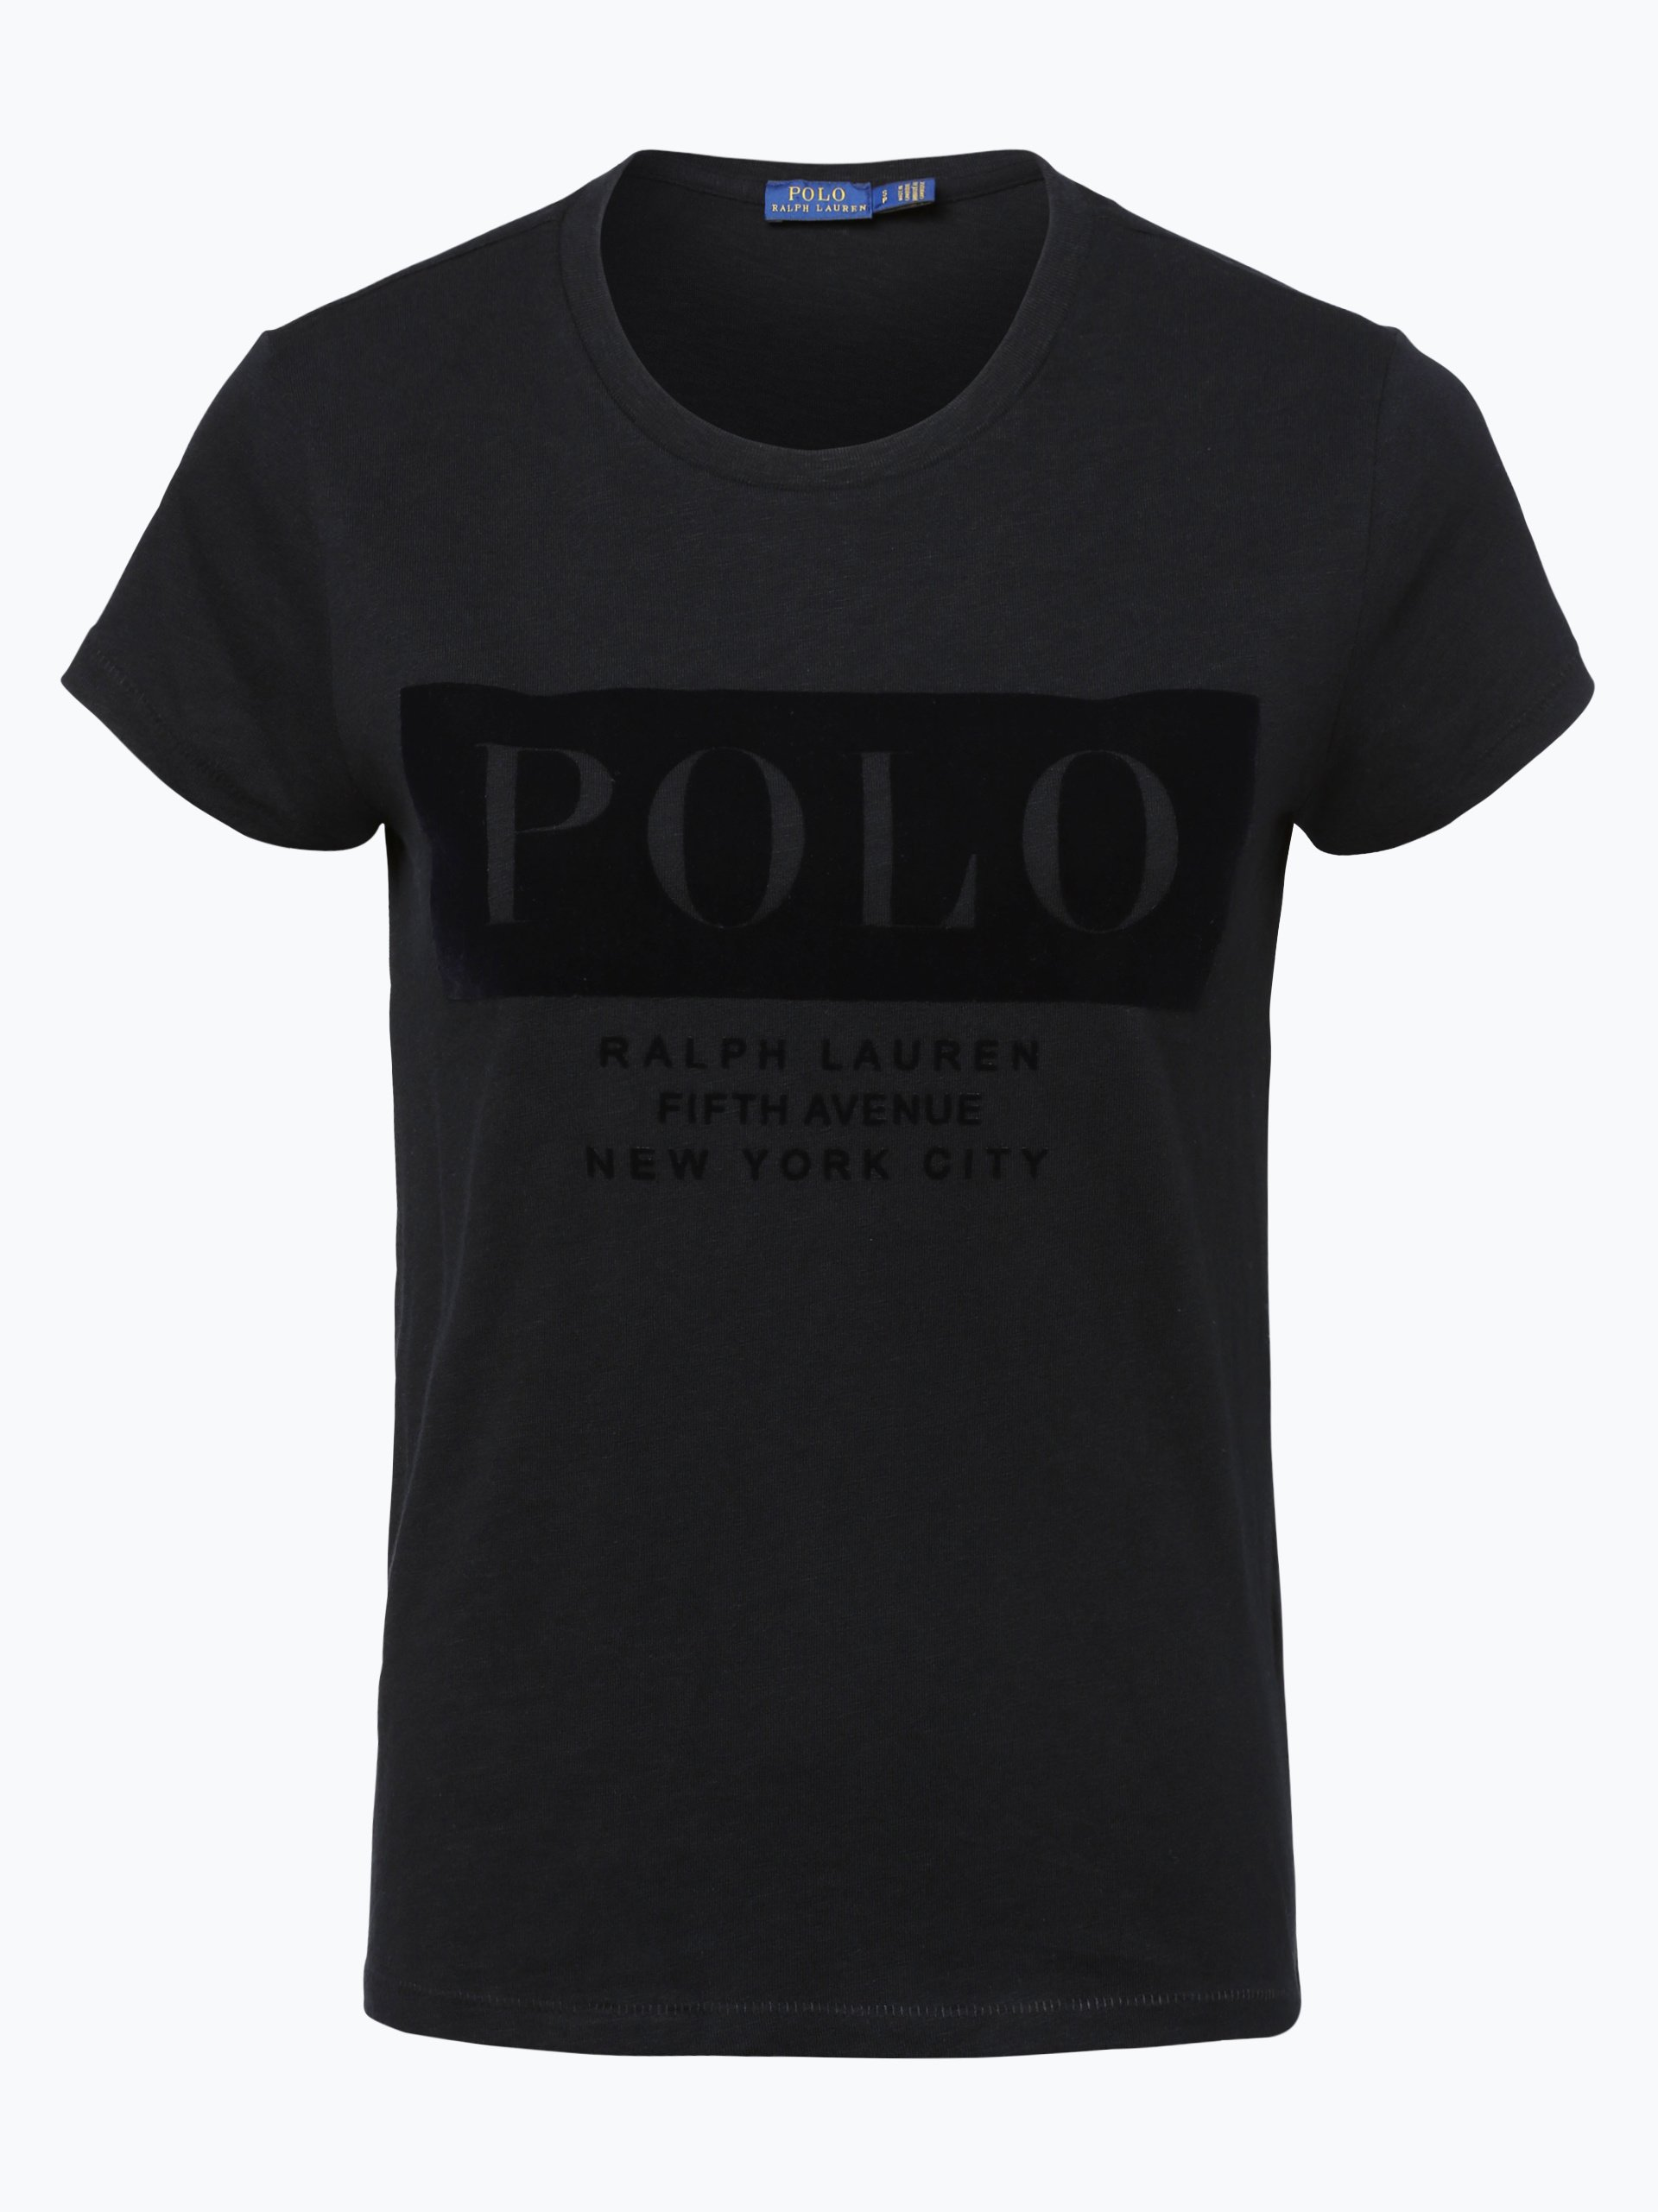 polo ralph lauren damen t shirt schwarz uni online kaufen. Black Bedroom Furniture Sets. Home Design Ideas